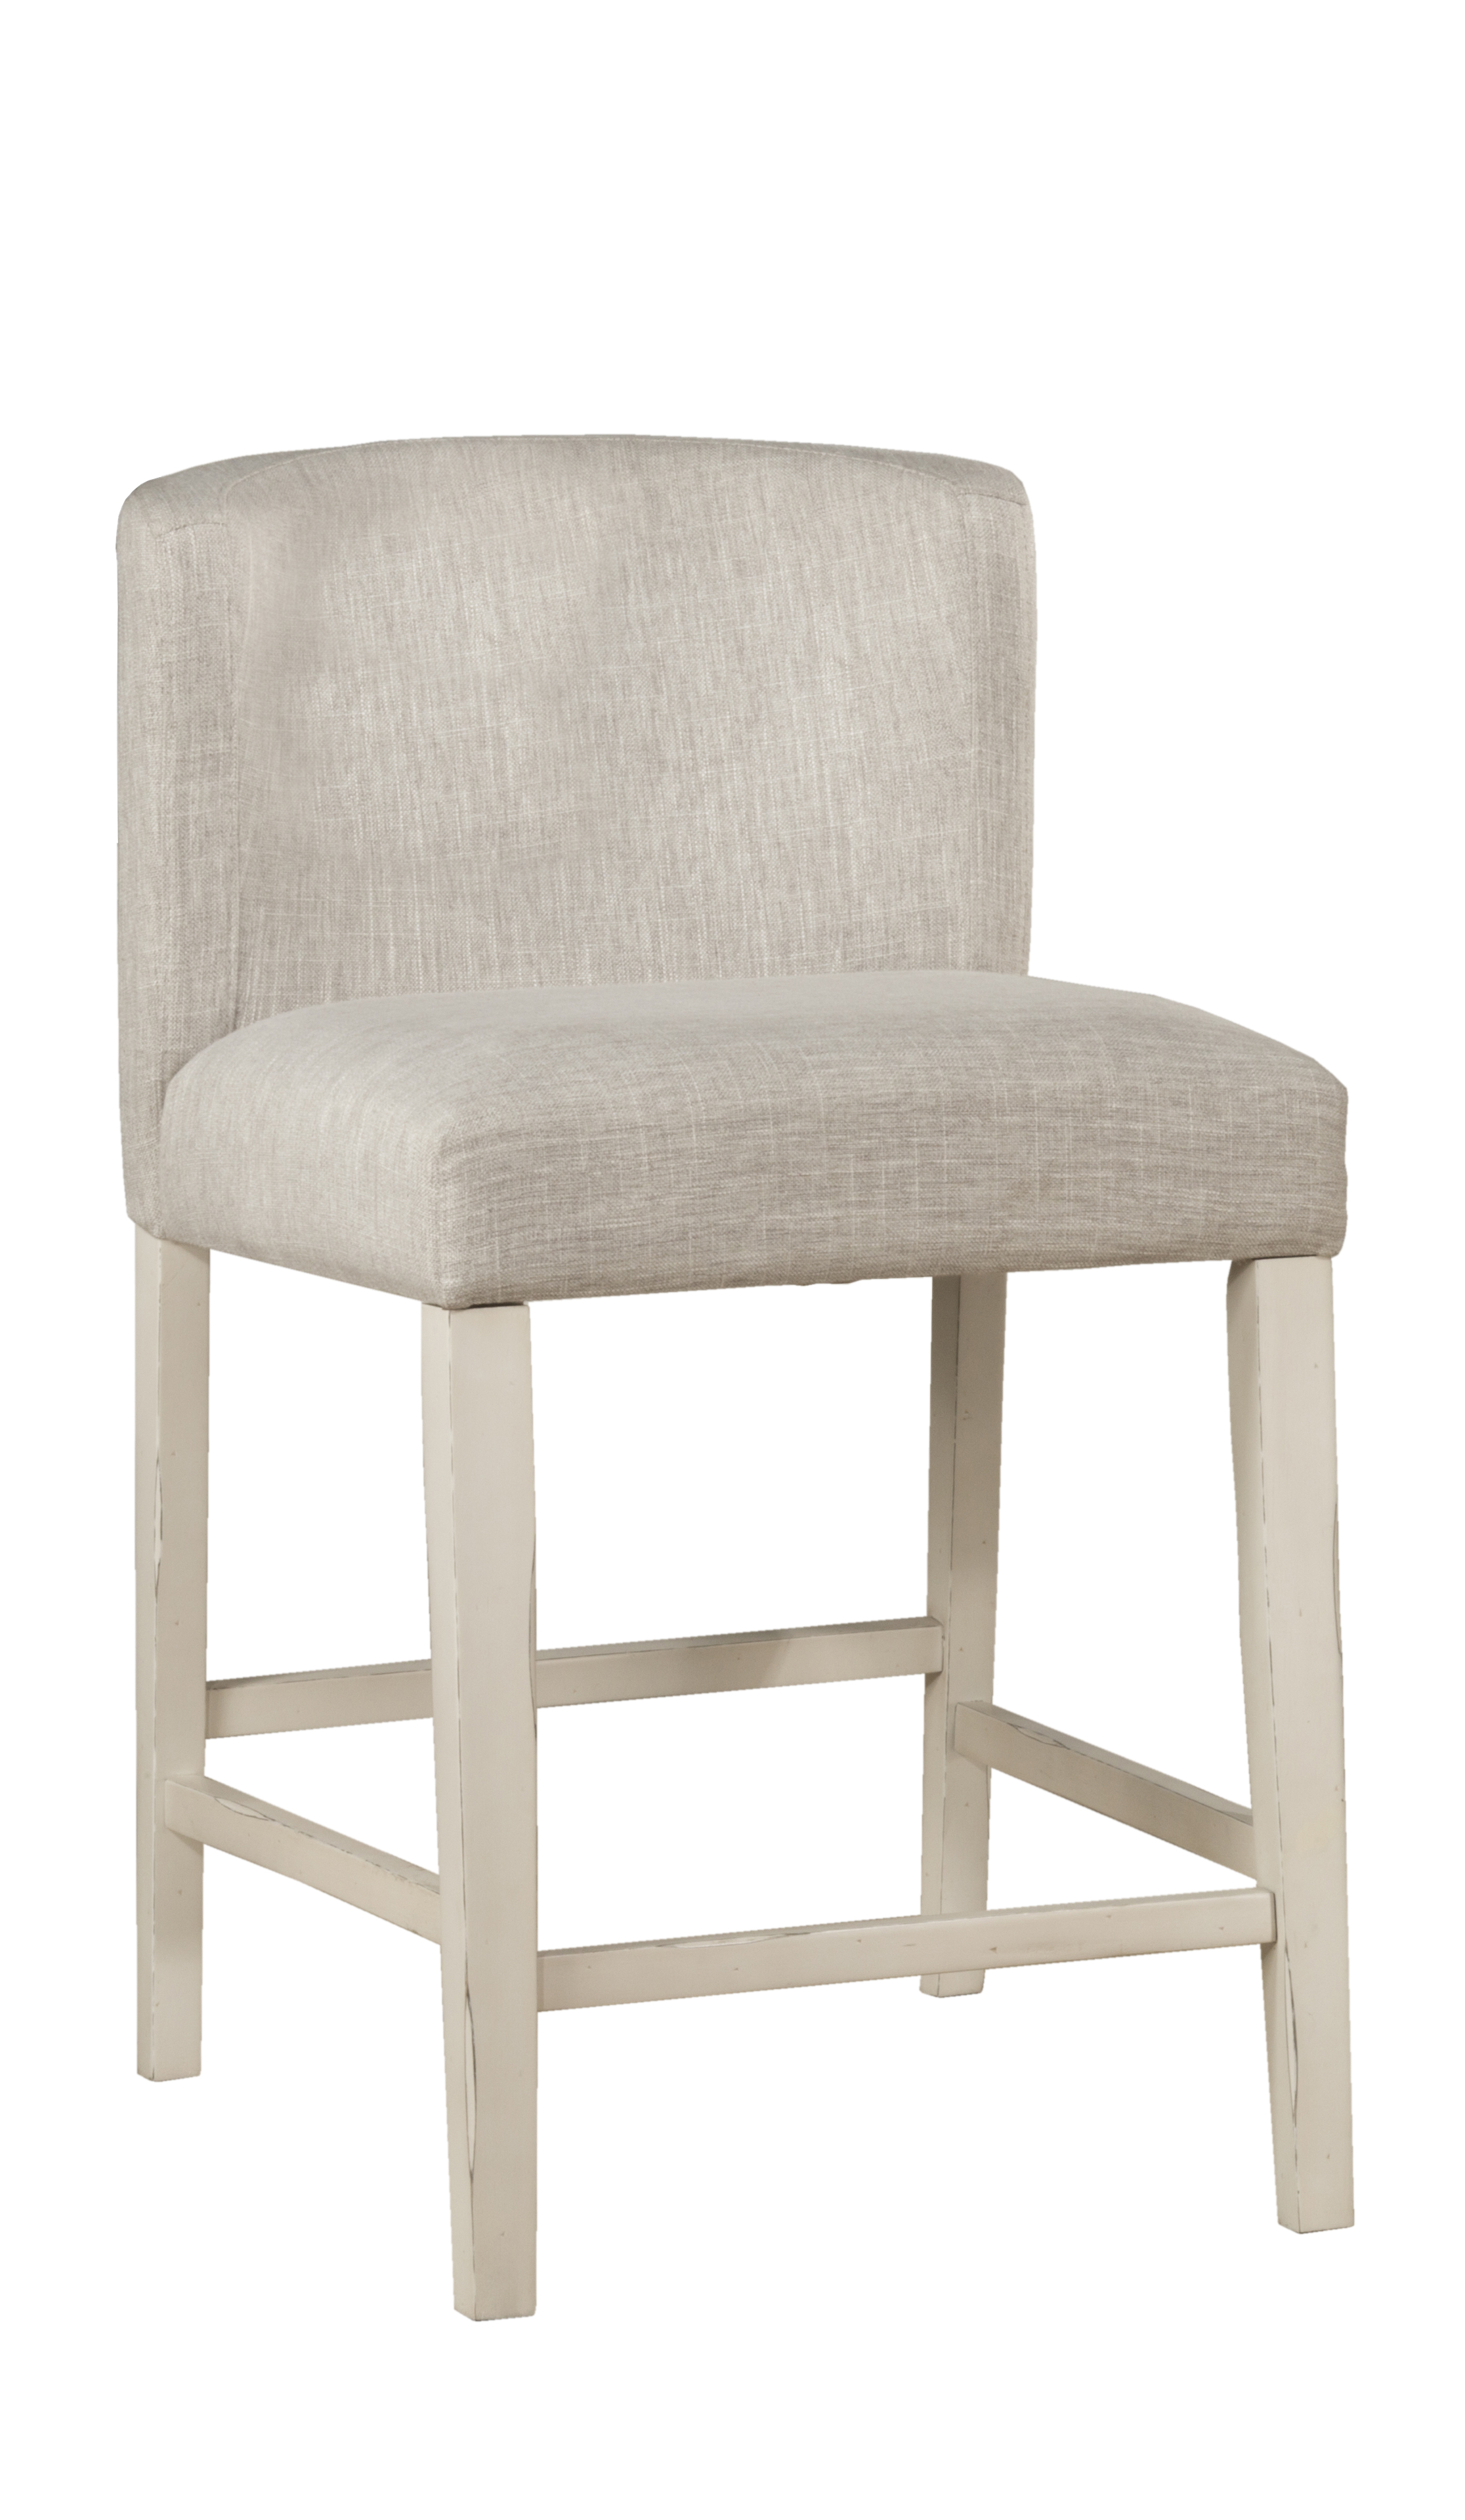 Counter Height Chairs With Arms Clarion Non Swivel Wing Arm Counter Height Stool Sea White Set